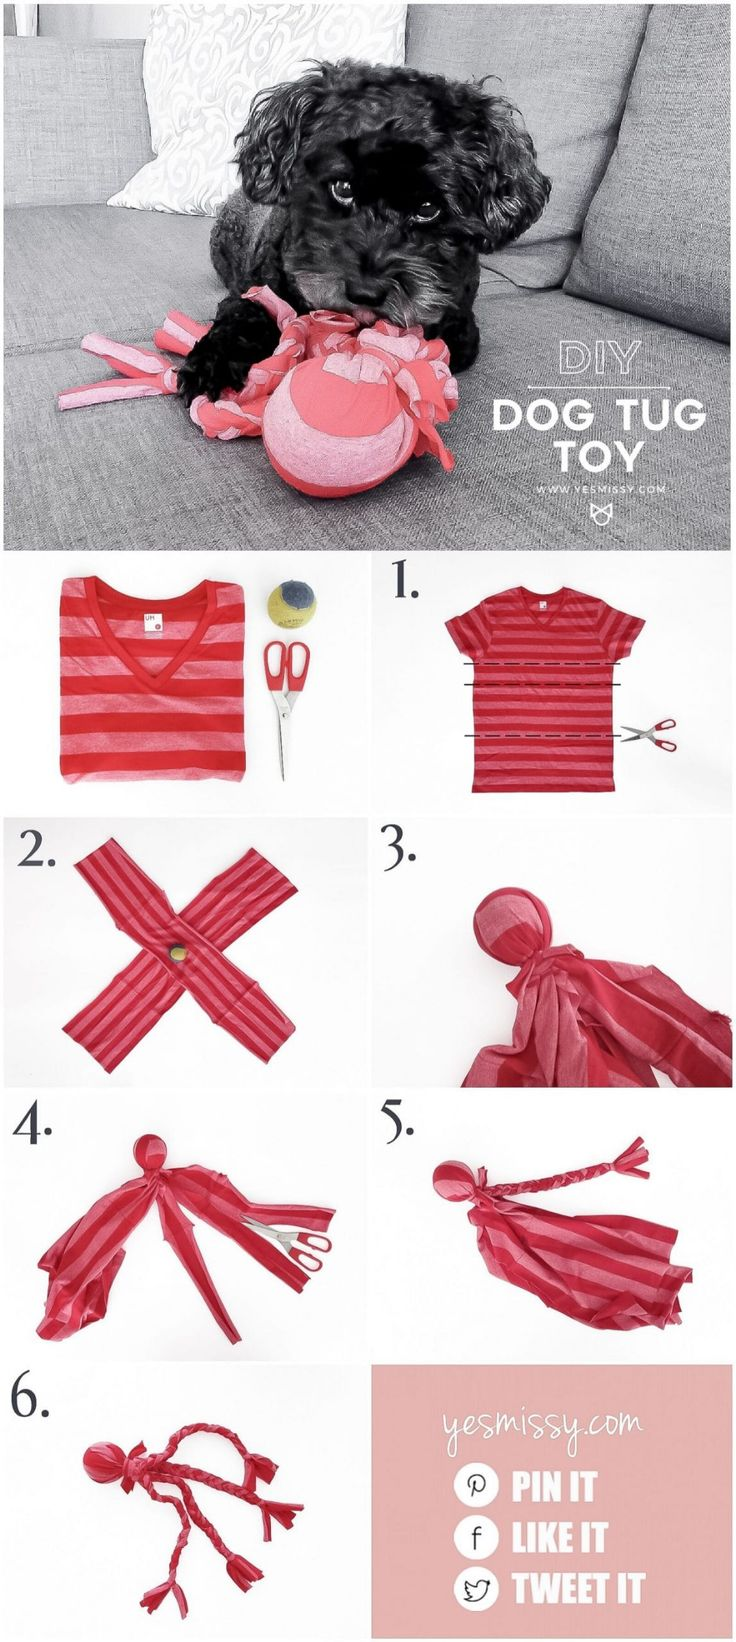 DIY Dog Toy - Your Dog Will Love this Easy to Make Tug Toy - YesMissy Diy Dog Toys, Cat Toys, Toy Diy, Diy Animal Toys, Diy Toys Easy, Cute Dog Toys, Homemade Dog Toys, Diy Pour Chien, Toy Puppies